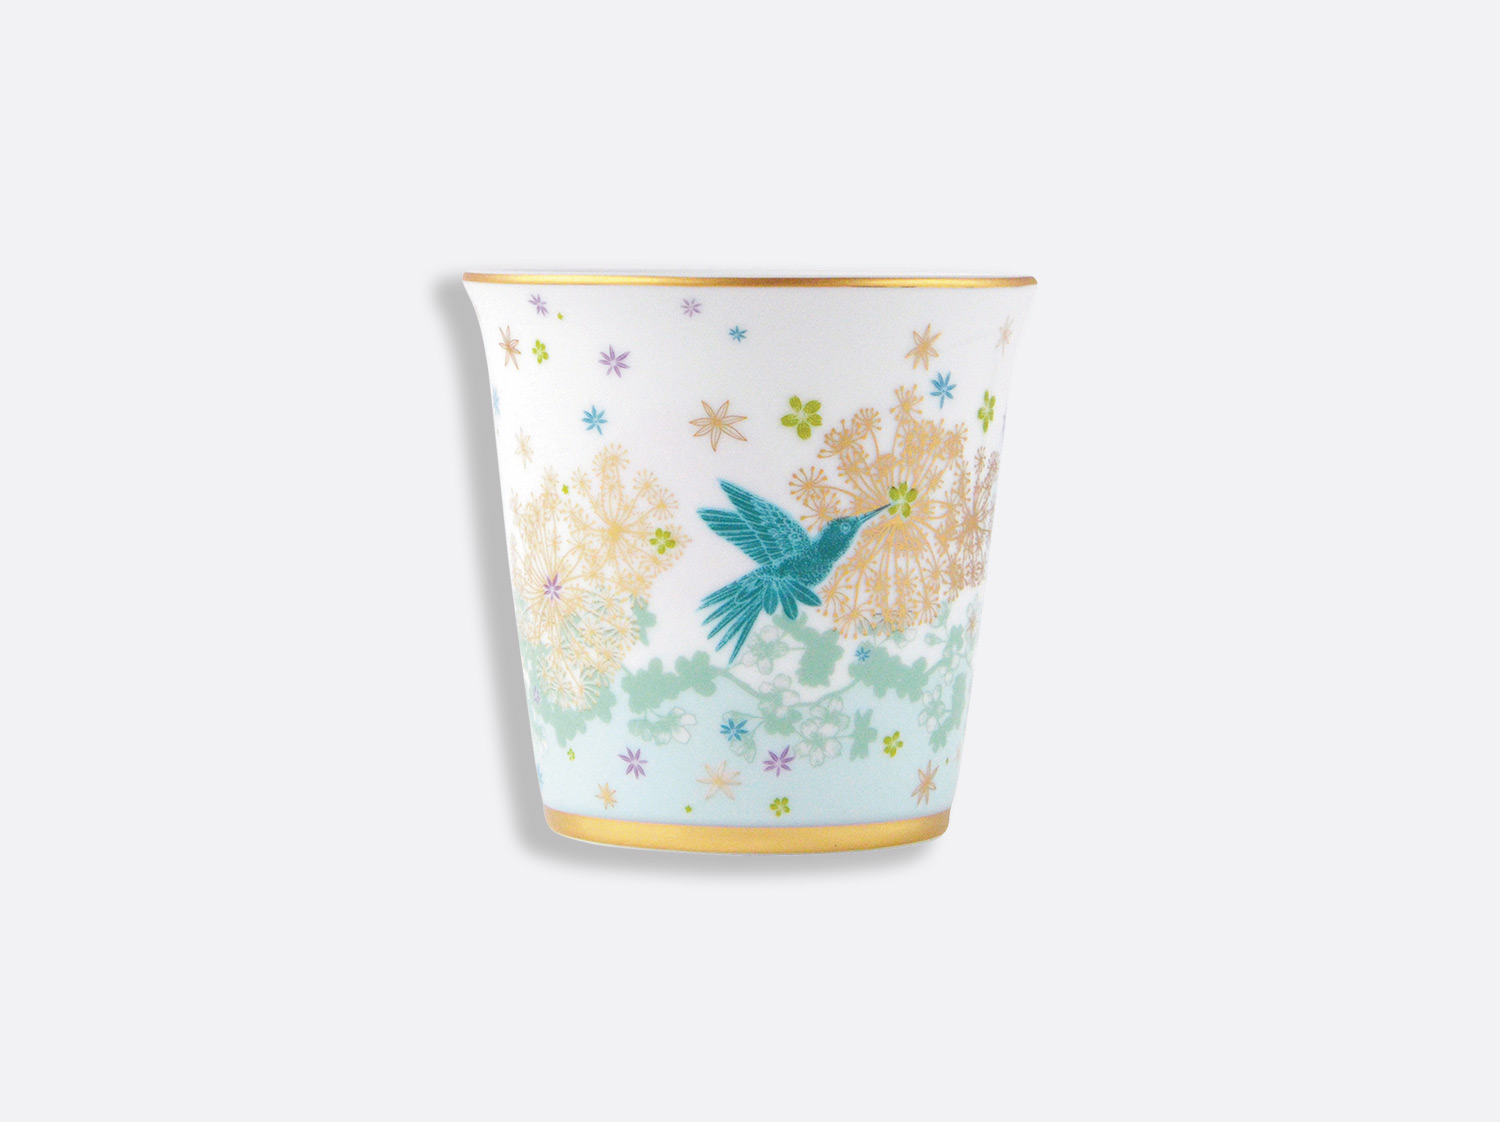 Pot 9 cm + bougie parfumée 200g en porcelaine de la collection FÉERIE - MICHAËL CAILLOUX Bernardaud